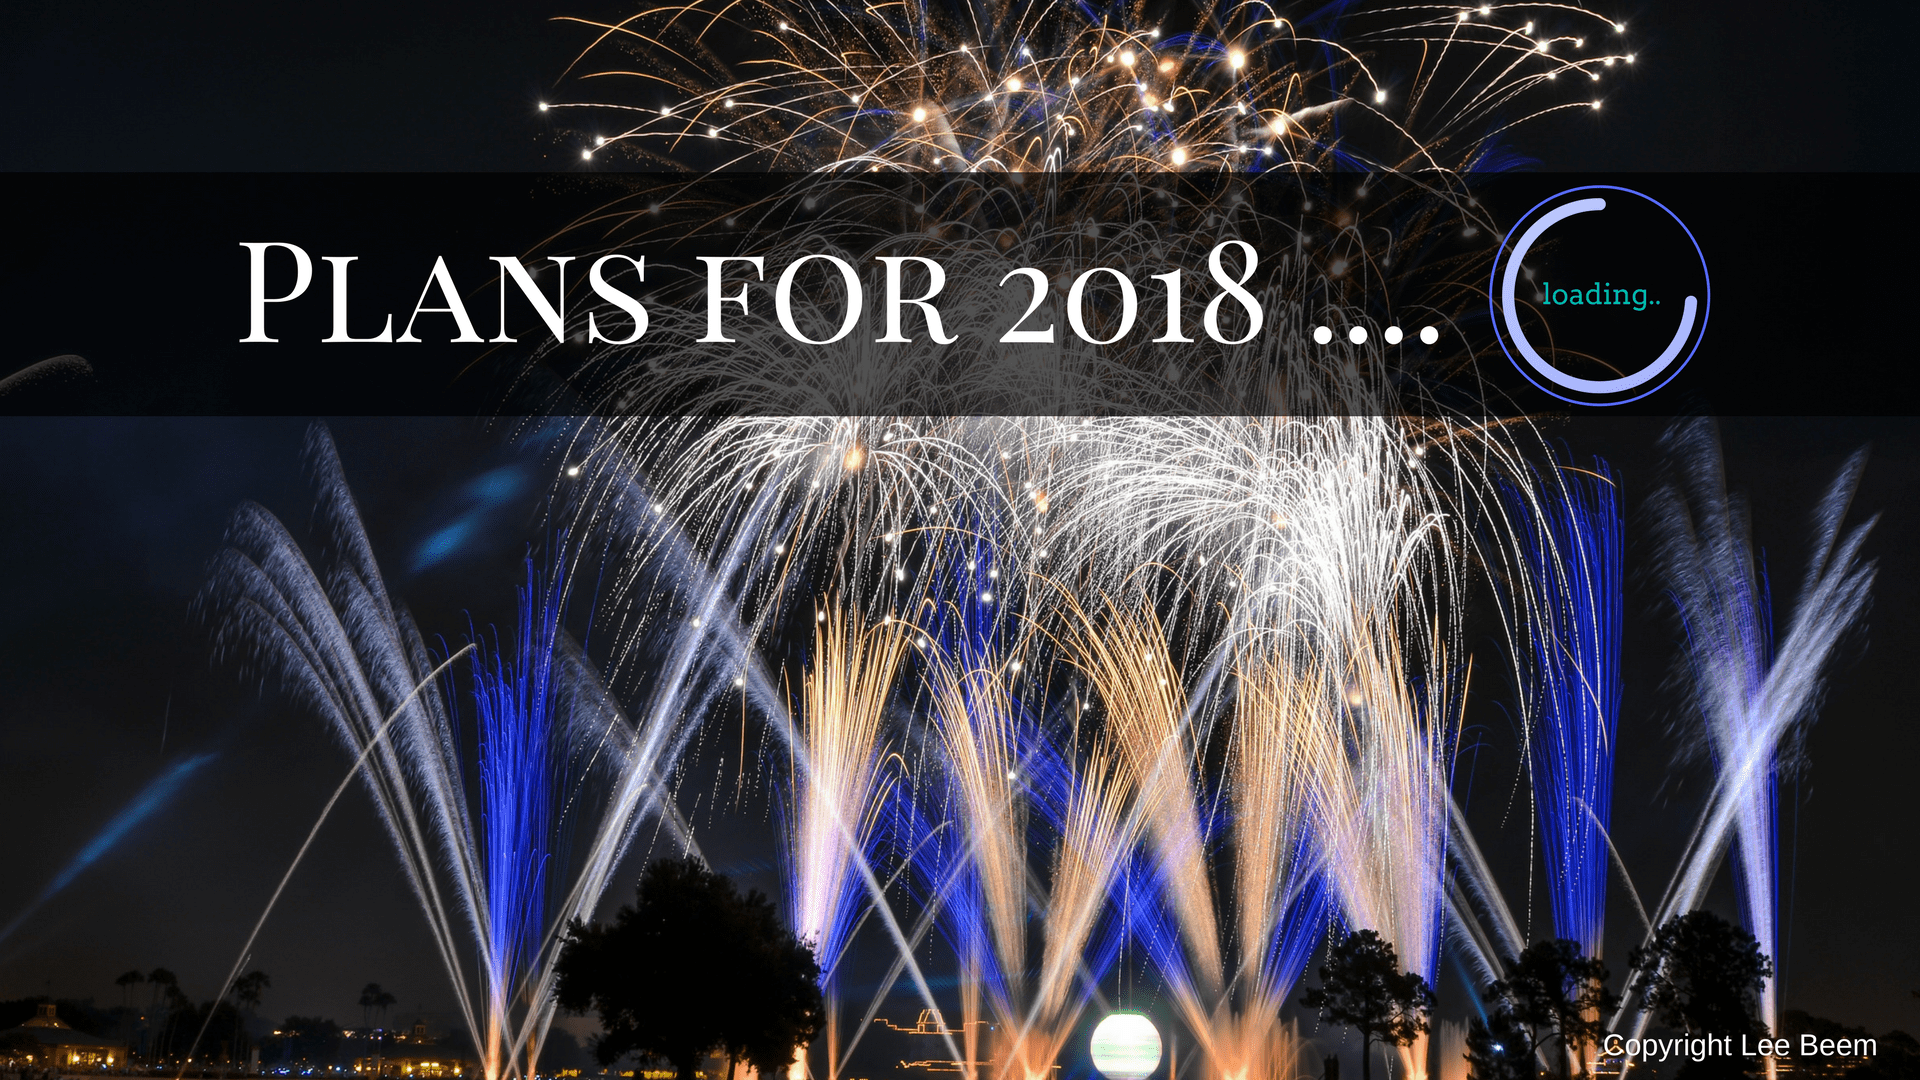 Plans for 2018 ….